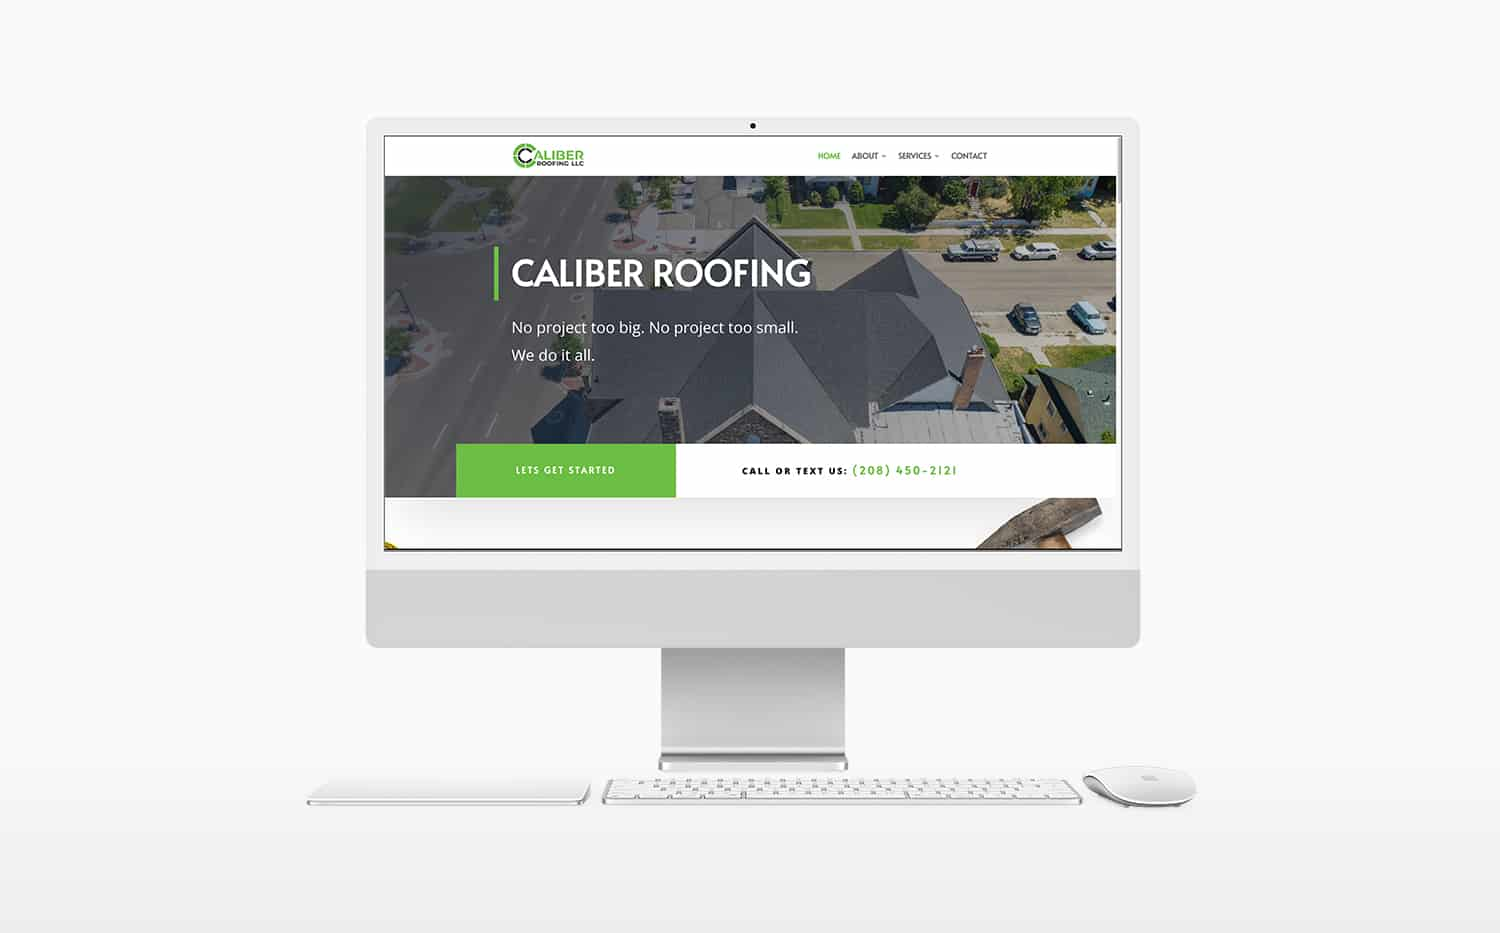 caliber roofing website made by boise web design company